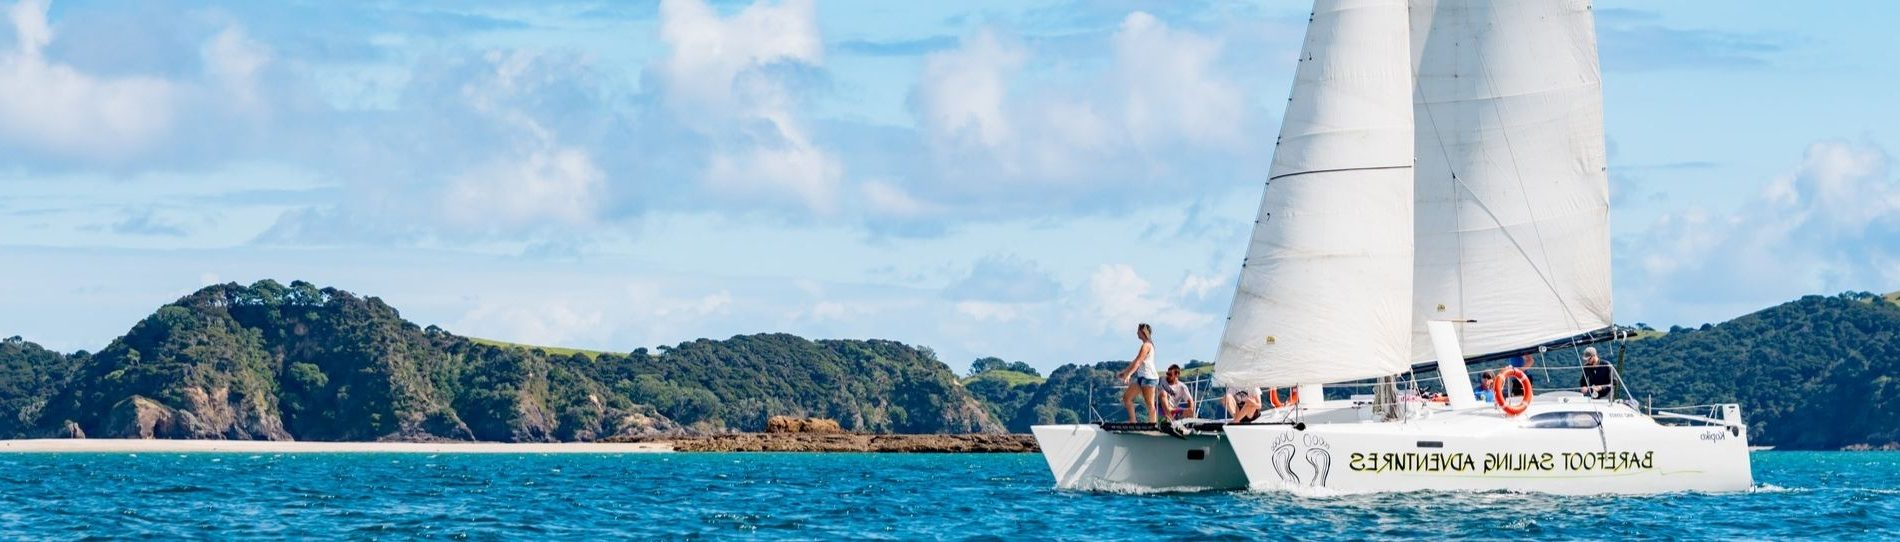 attractions in bay of islands nz